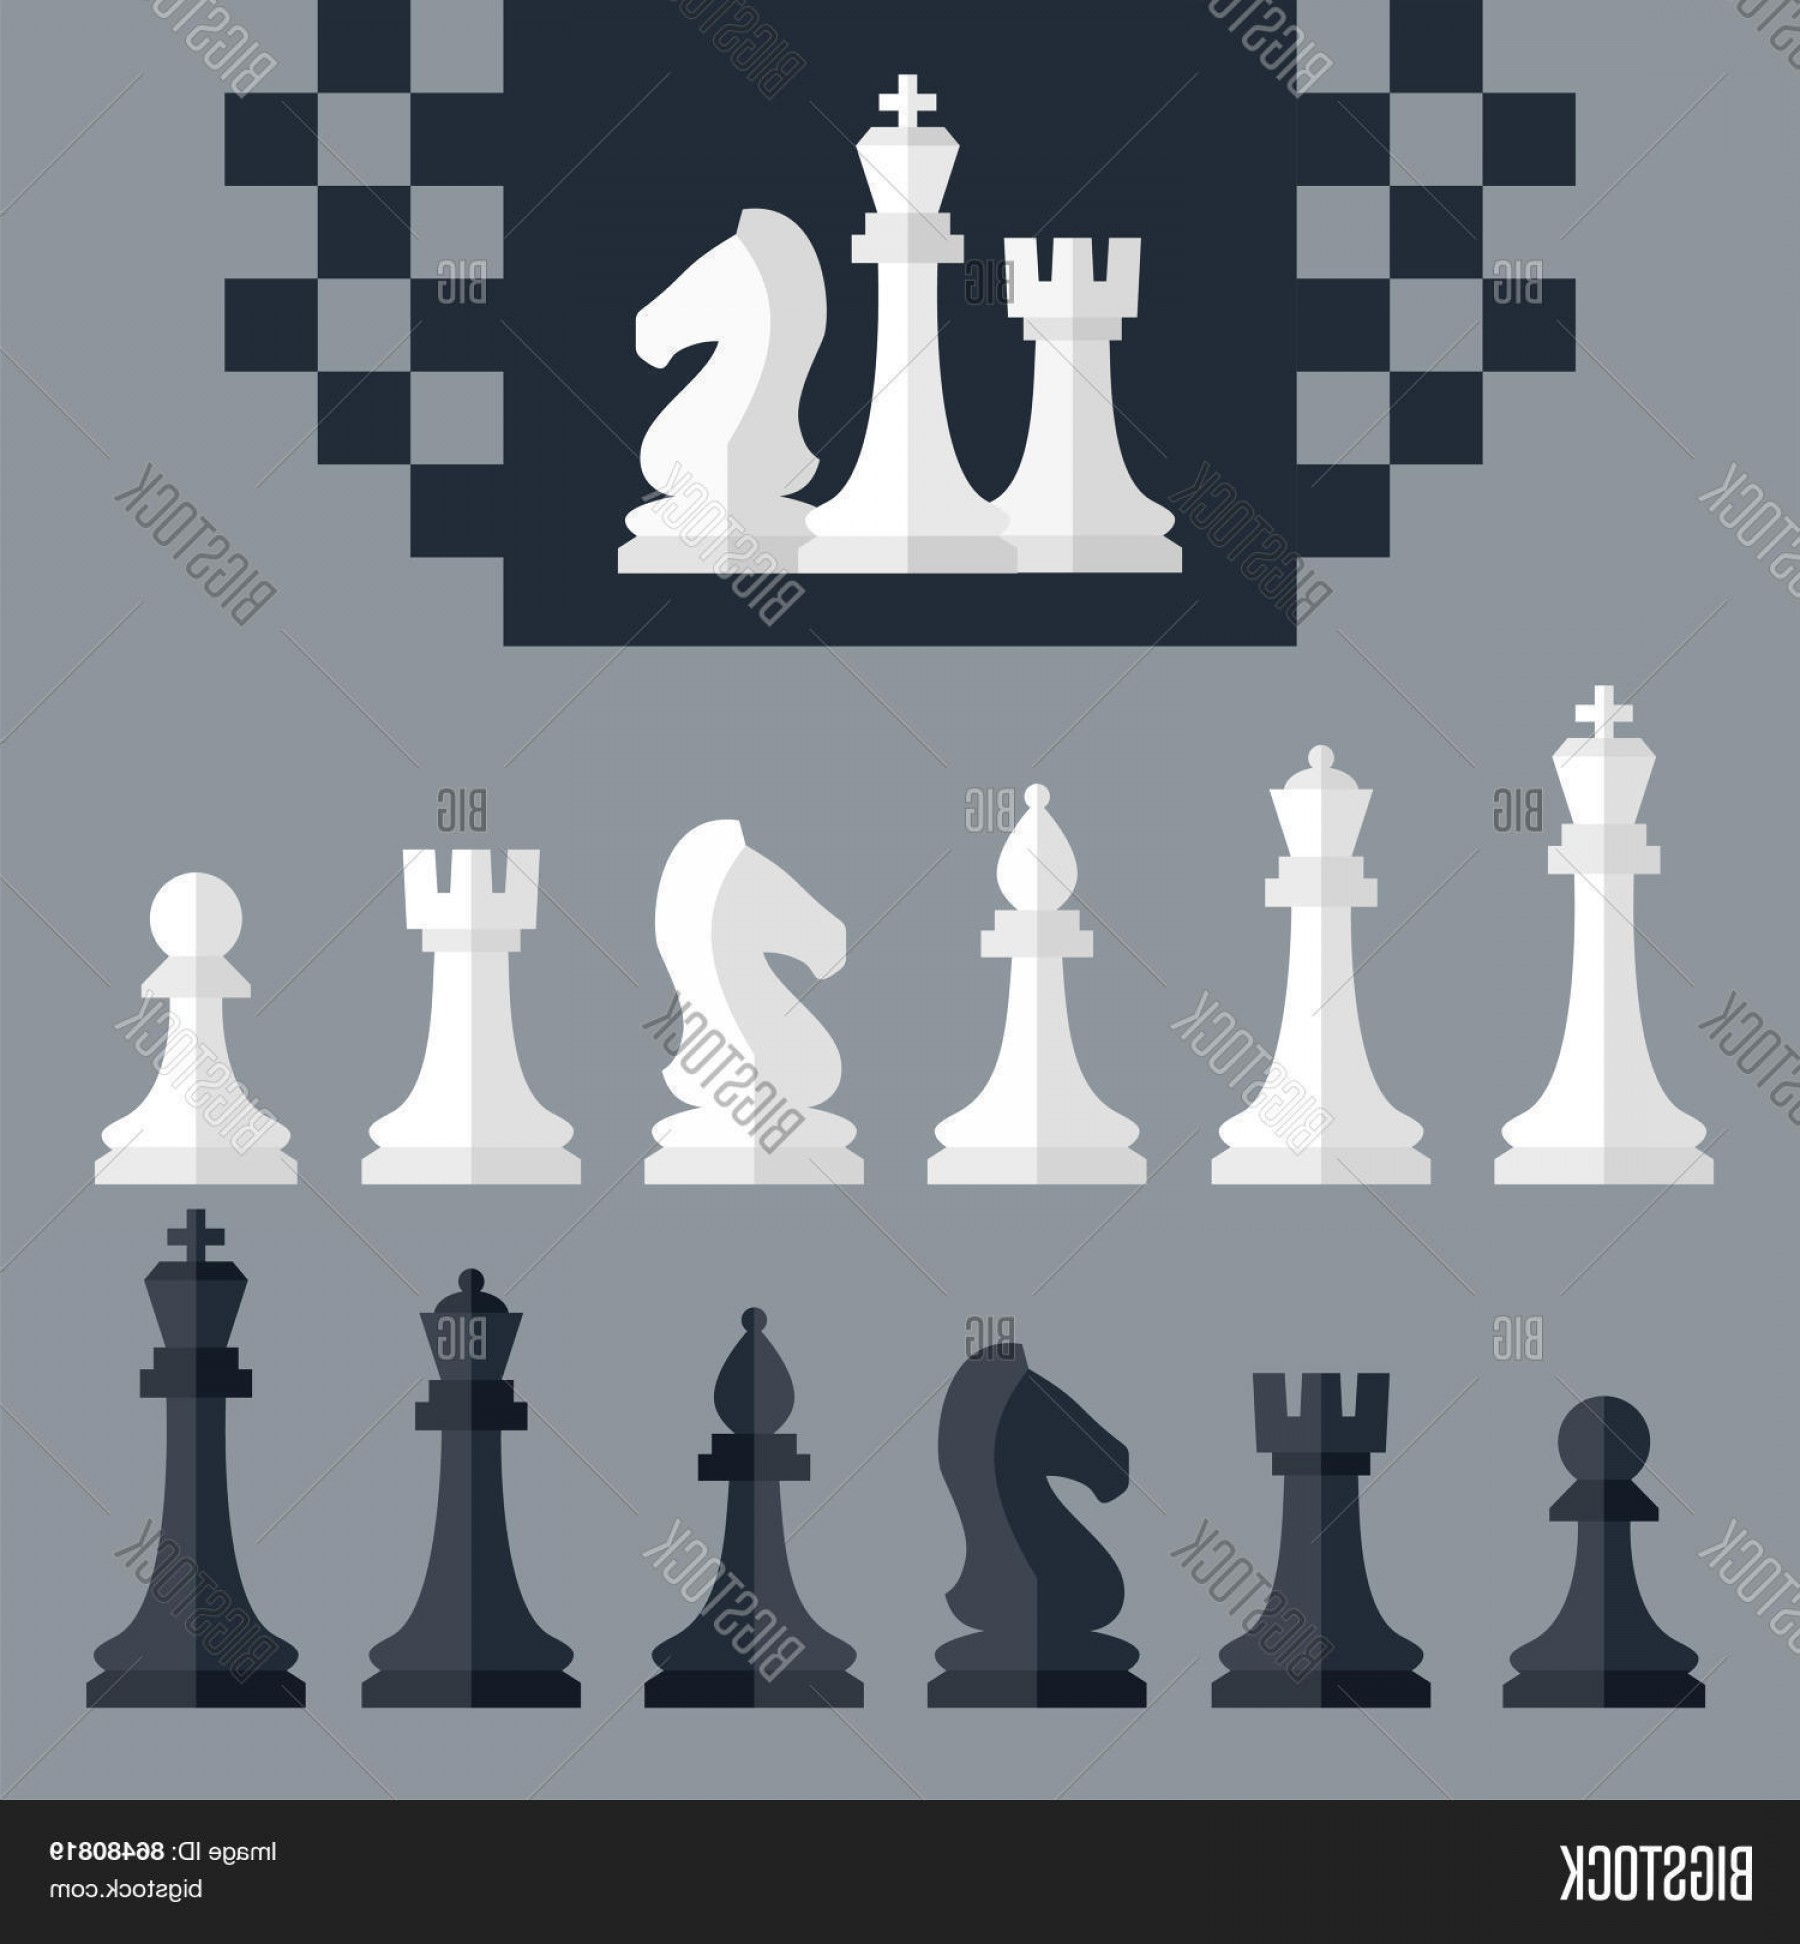 Vector Chess Board: Stock Vector Vector Chess Pieces Icons Setc Flat Style